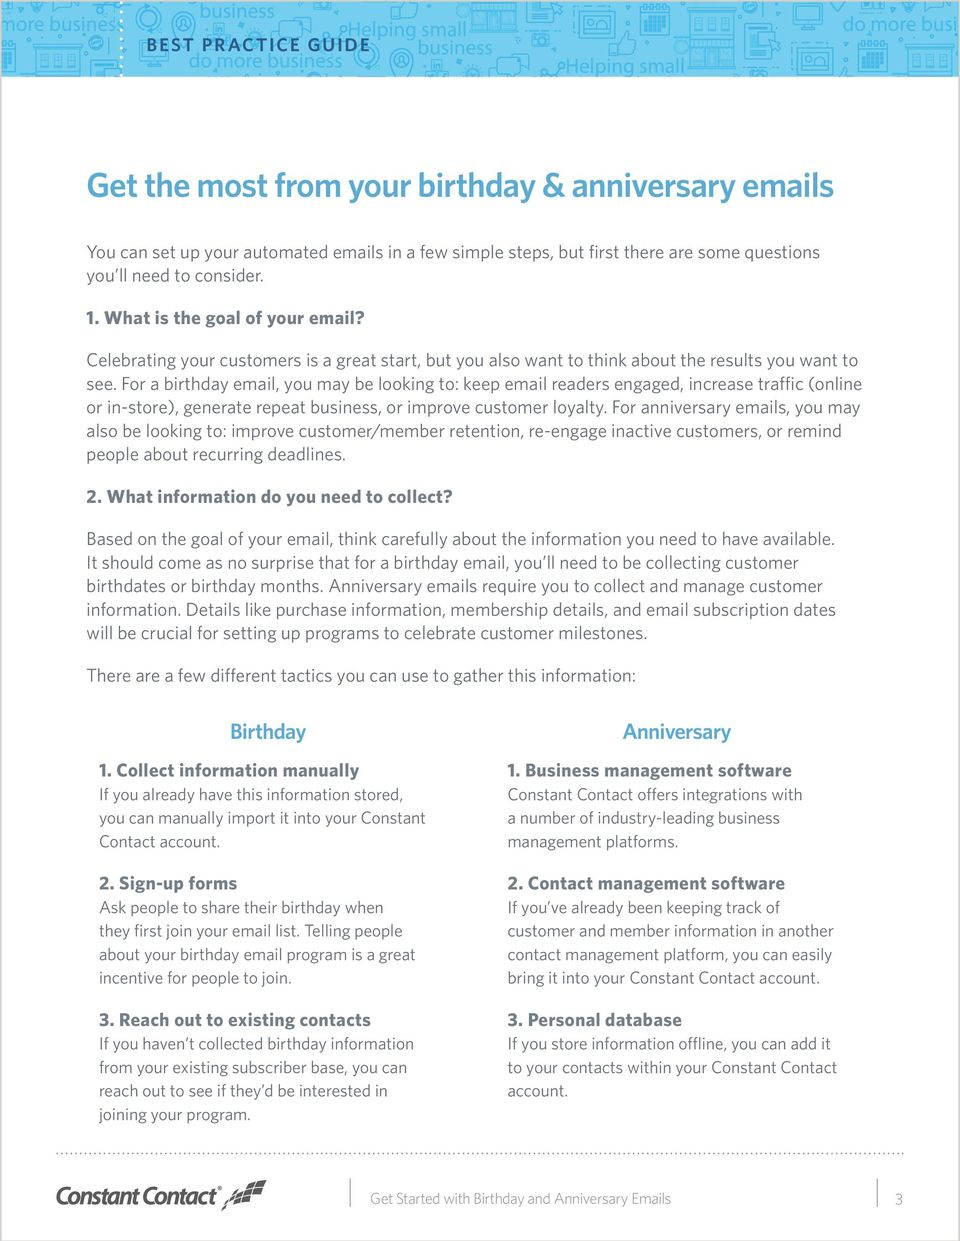 For a birthday email, you may be looking to: keep email readers engaged, increase traffic (online or in-store), generate repeat business, or improve customer loyalty.